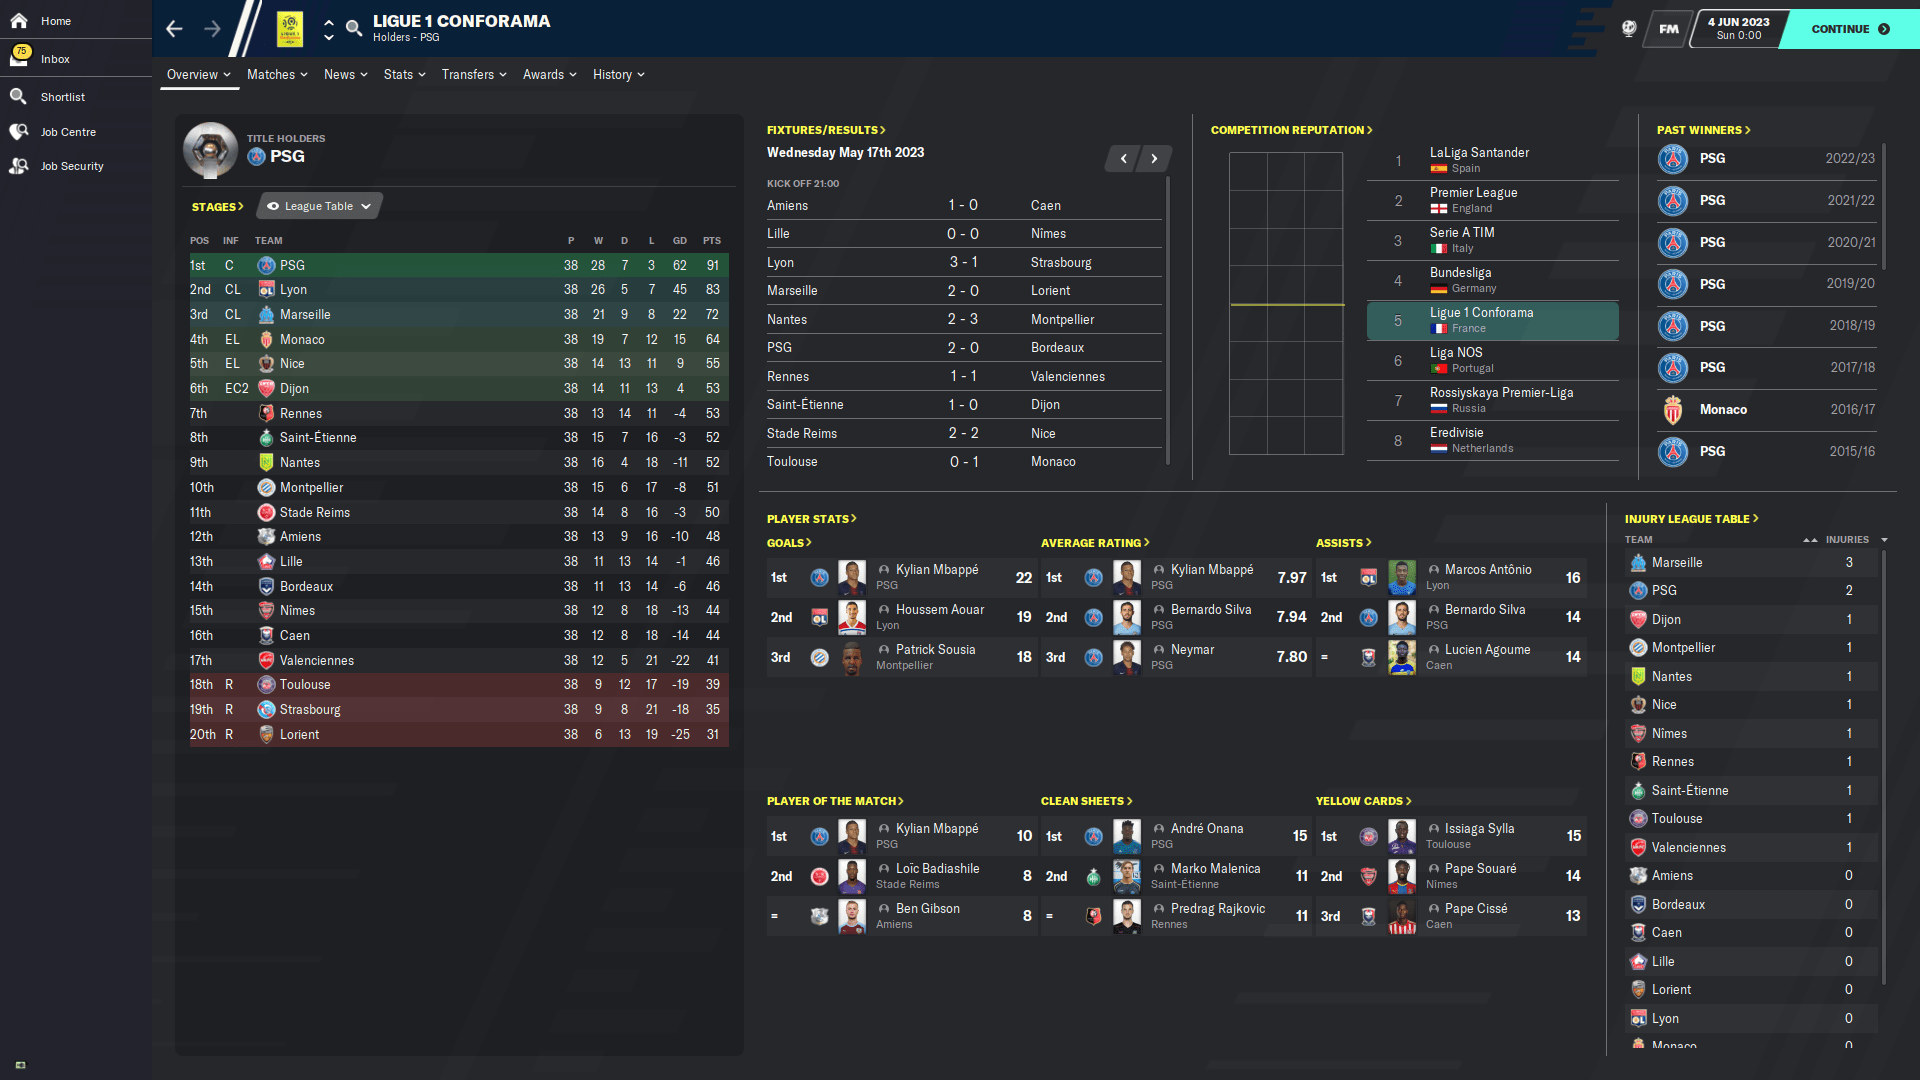 Ligue 1 Overview